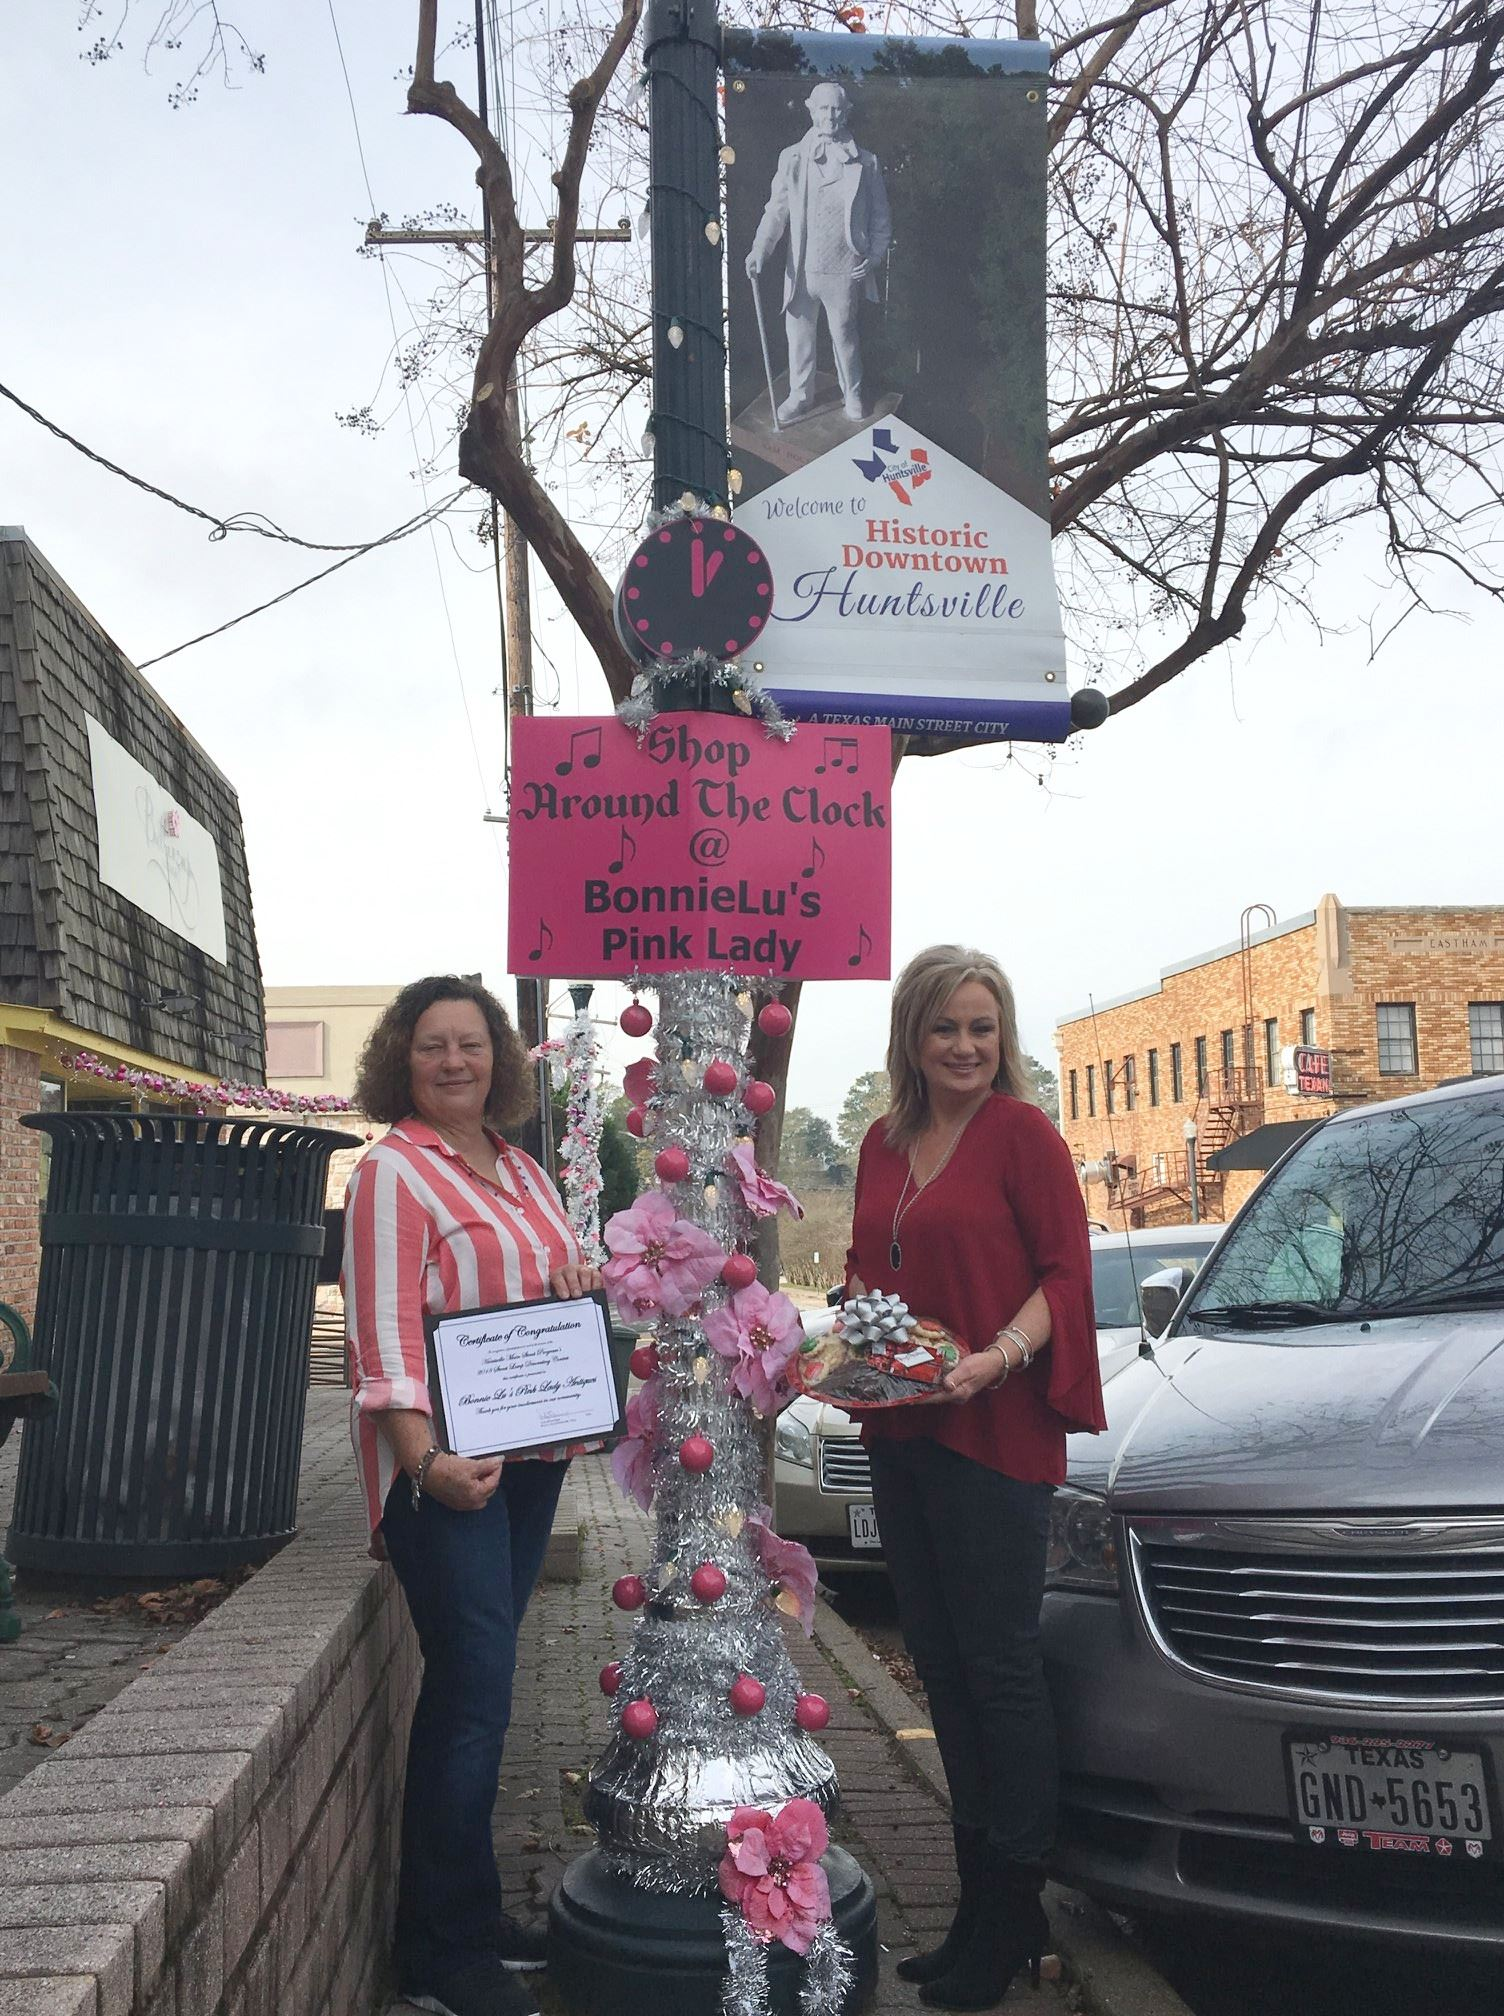 The Citys Main Street Office Celebrated Holiday Season With 2nd Annual Downtown Christmas Lamppost Decorating Contest Designed To Encourage Local